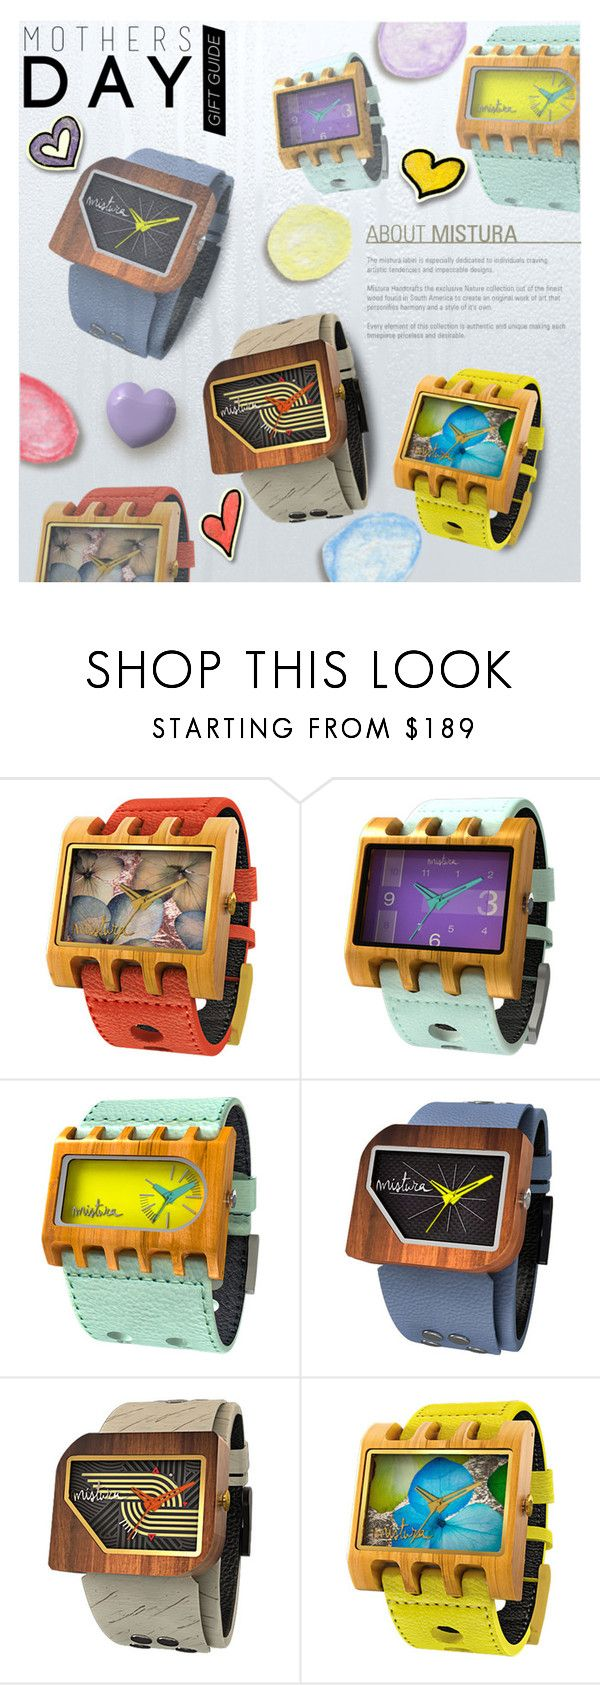 """Untitled #1348"" by blackfury ❤ liked on Polyvore featuring Mistura, watches, mothersdaygiftguide and blackfury"